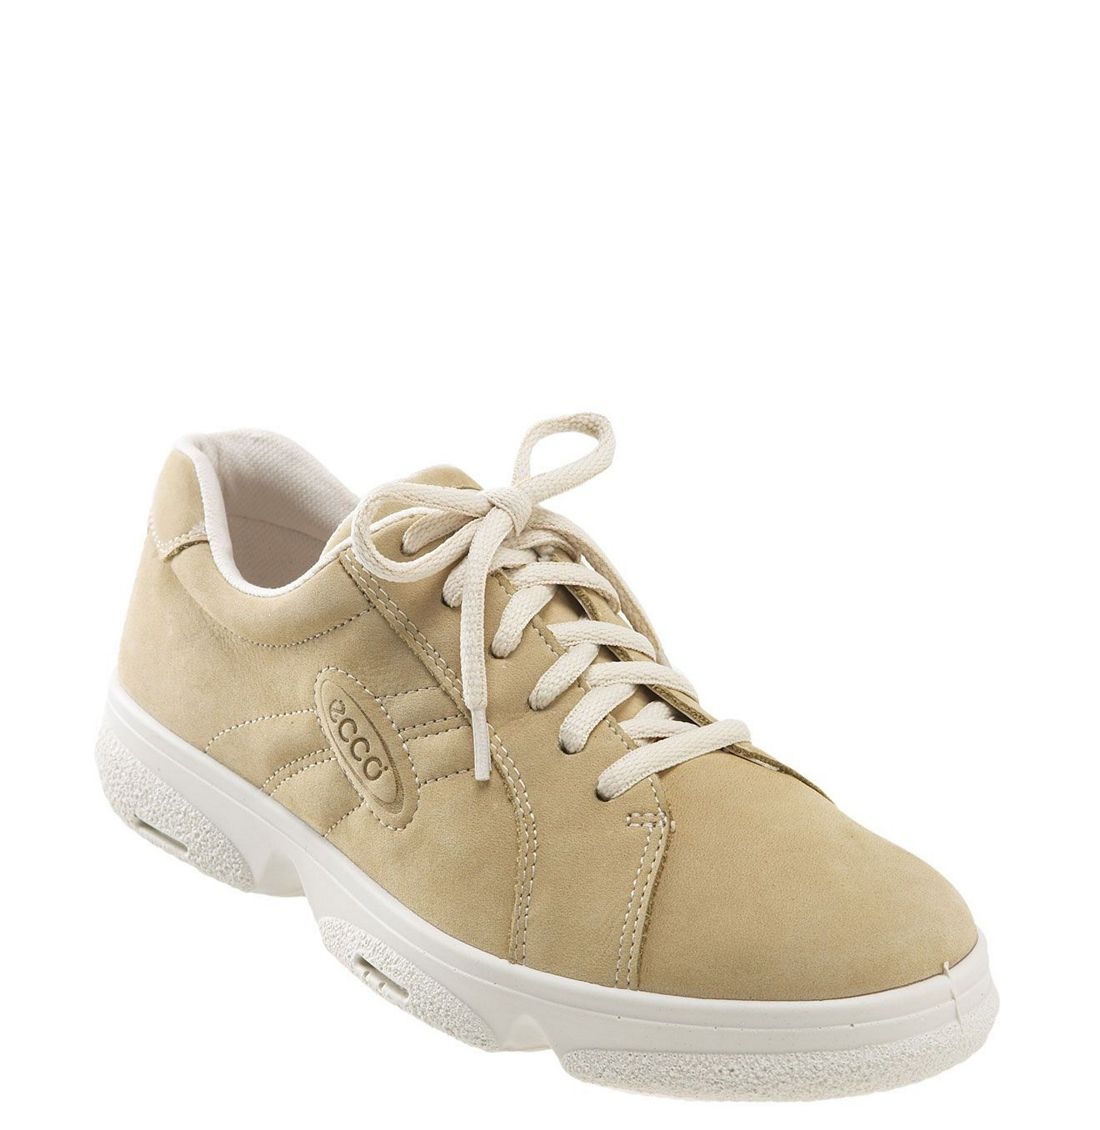 Tan Colored Womens Shoes